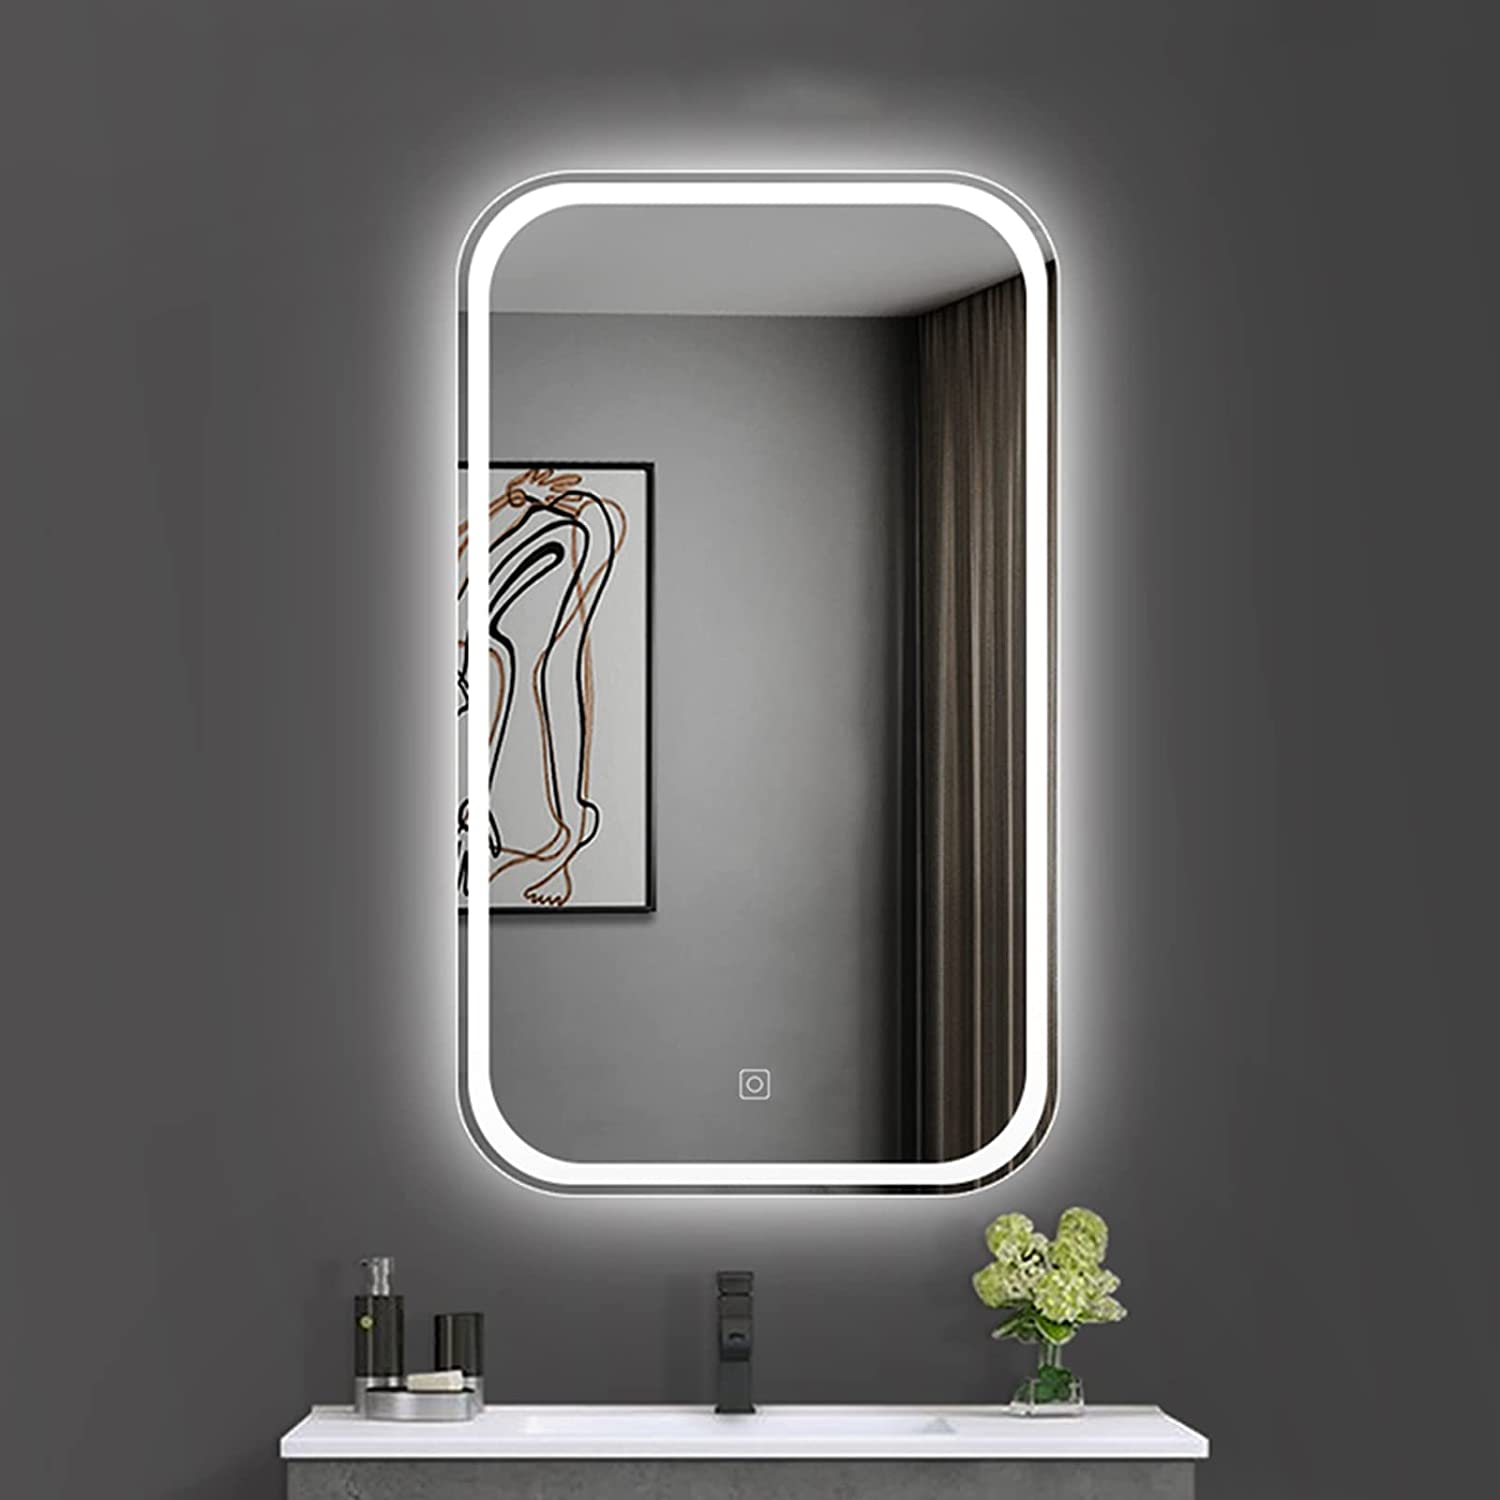 ZRXRY Dimmable LED Free Shipping Cheap Portland Mall Bargain Gift Bathroom Mirror V with Anti-Fog Wall Mounted